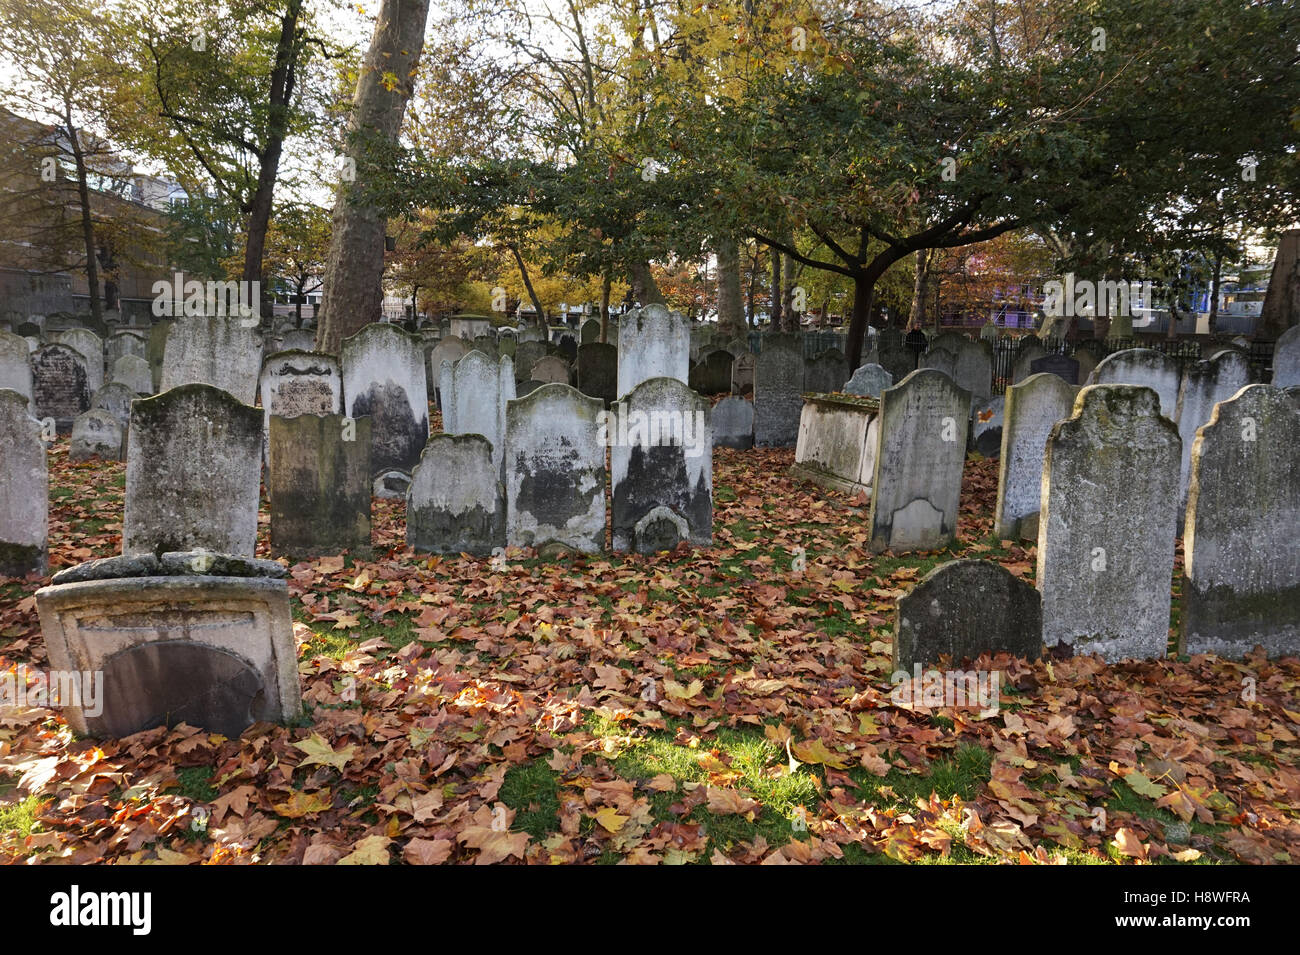 Bunhill Fields Burial Ground Cemetery, London, England, Uk Stock Photo